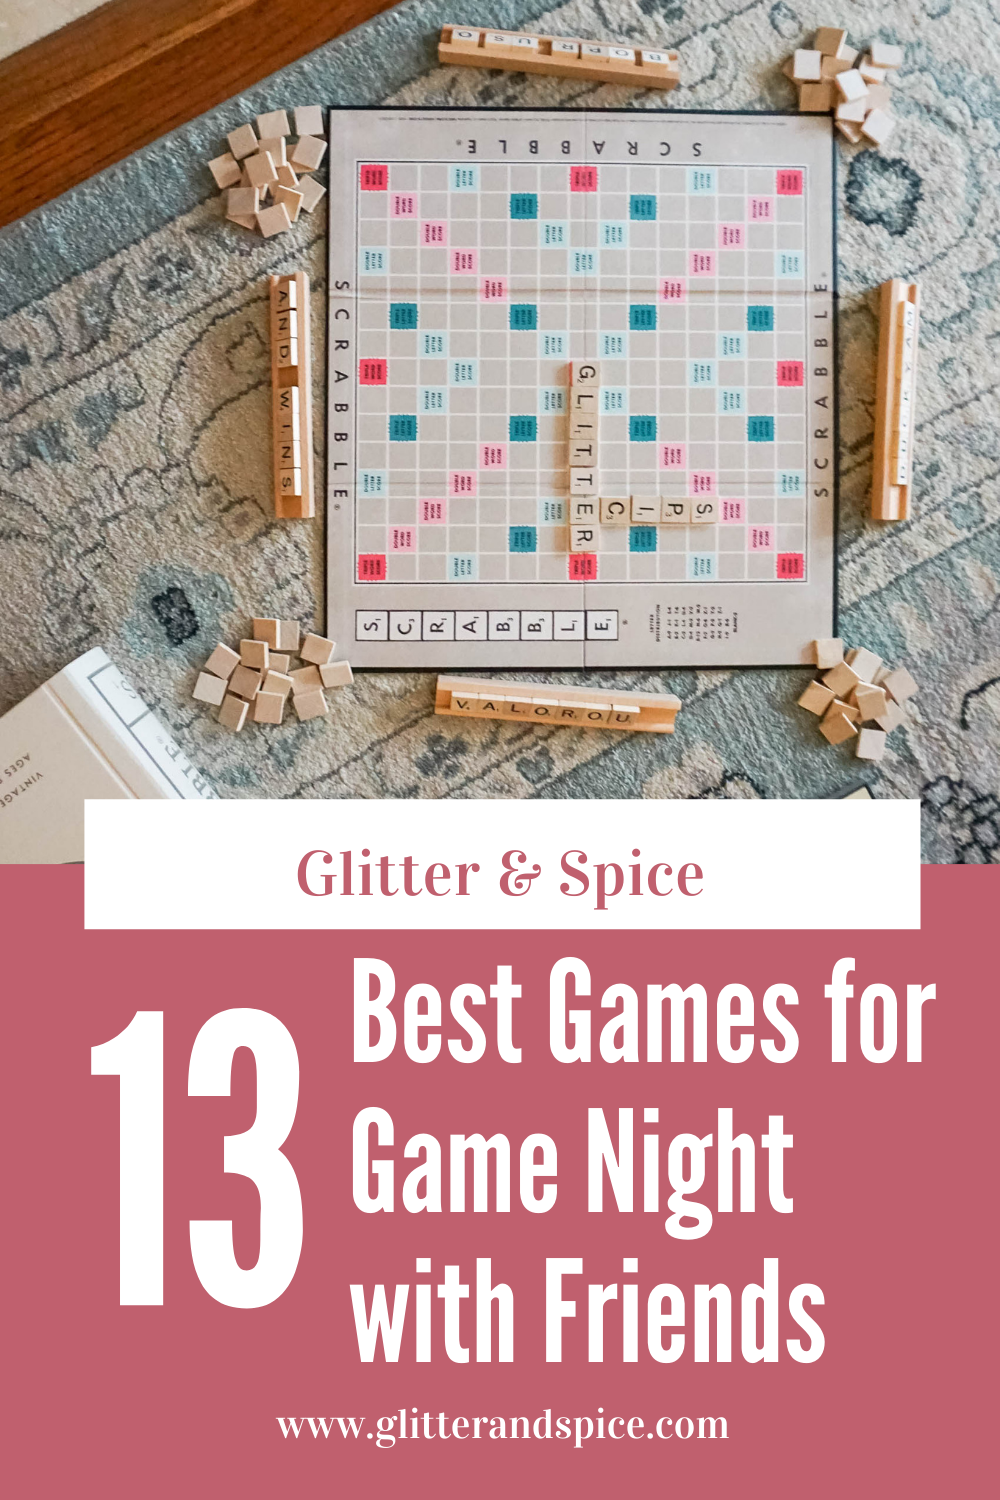 13 best games for game night with friends Pinterest image